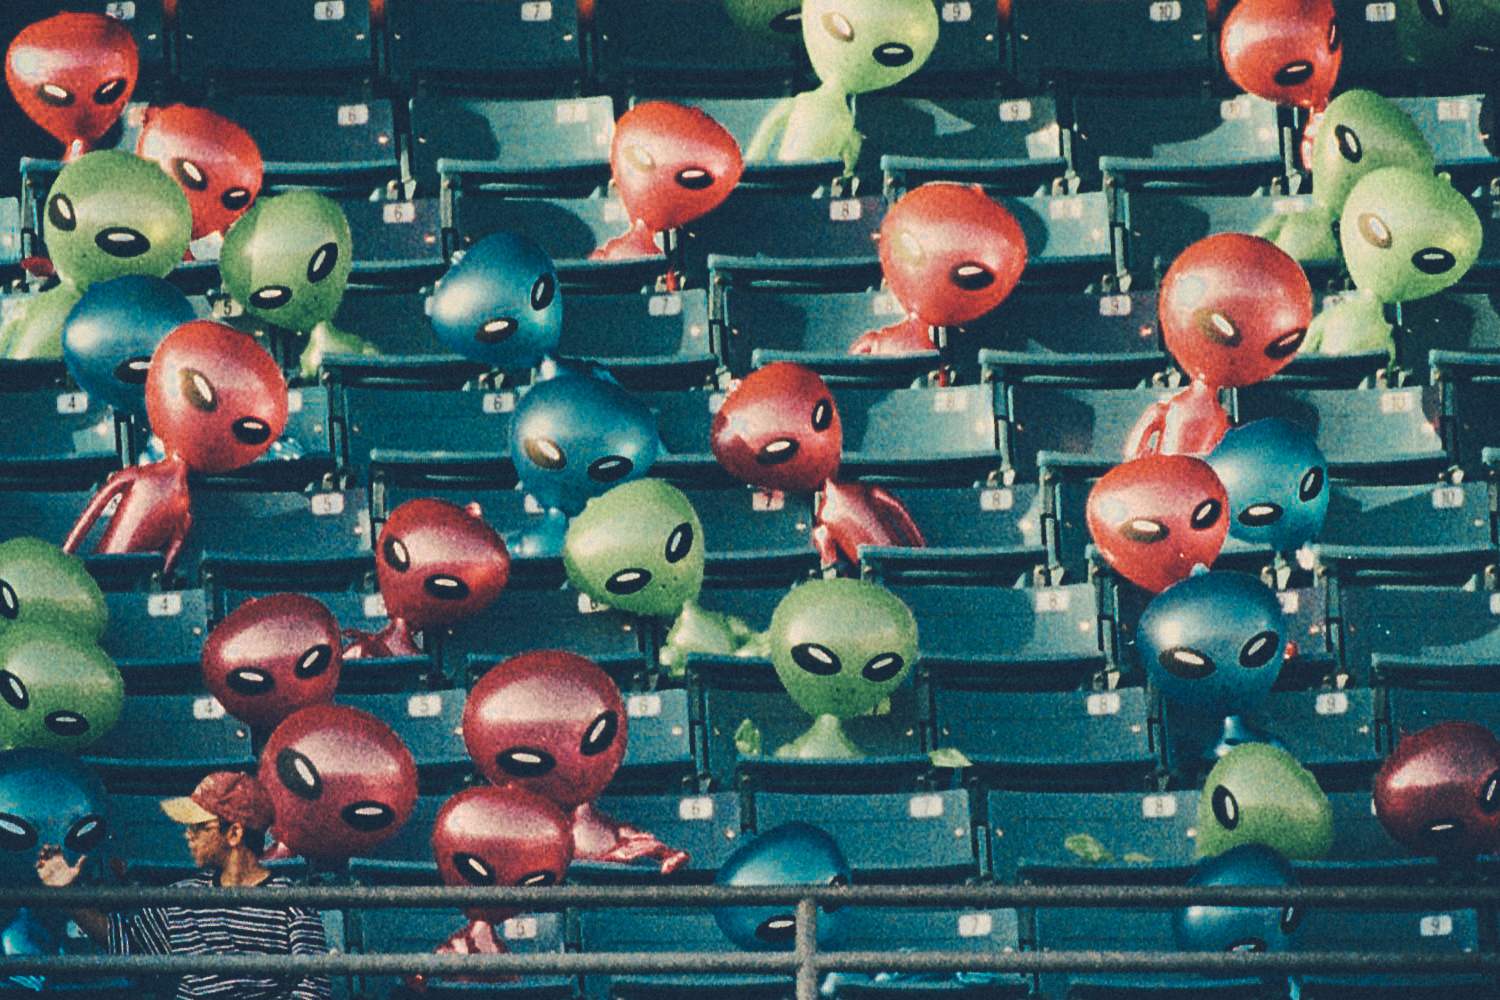 Aliens in the stands at LoanDepot Park